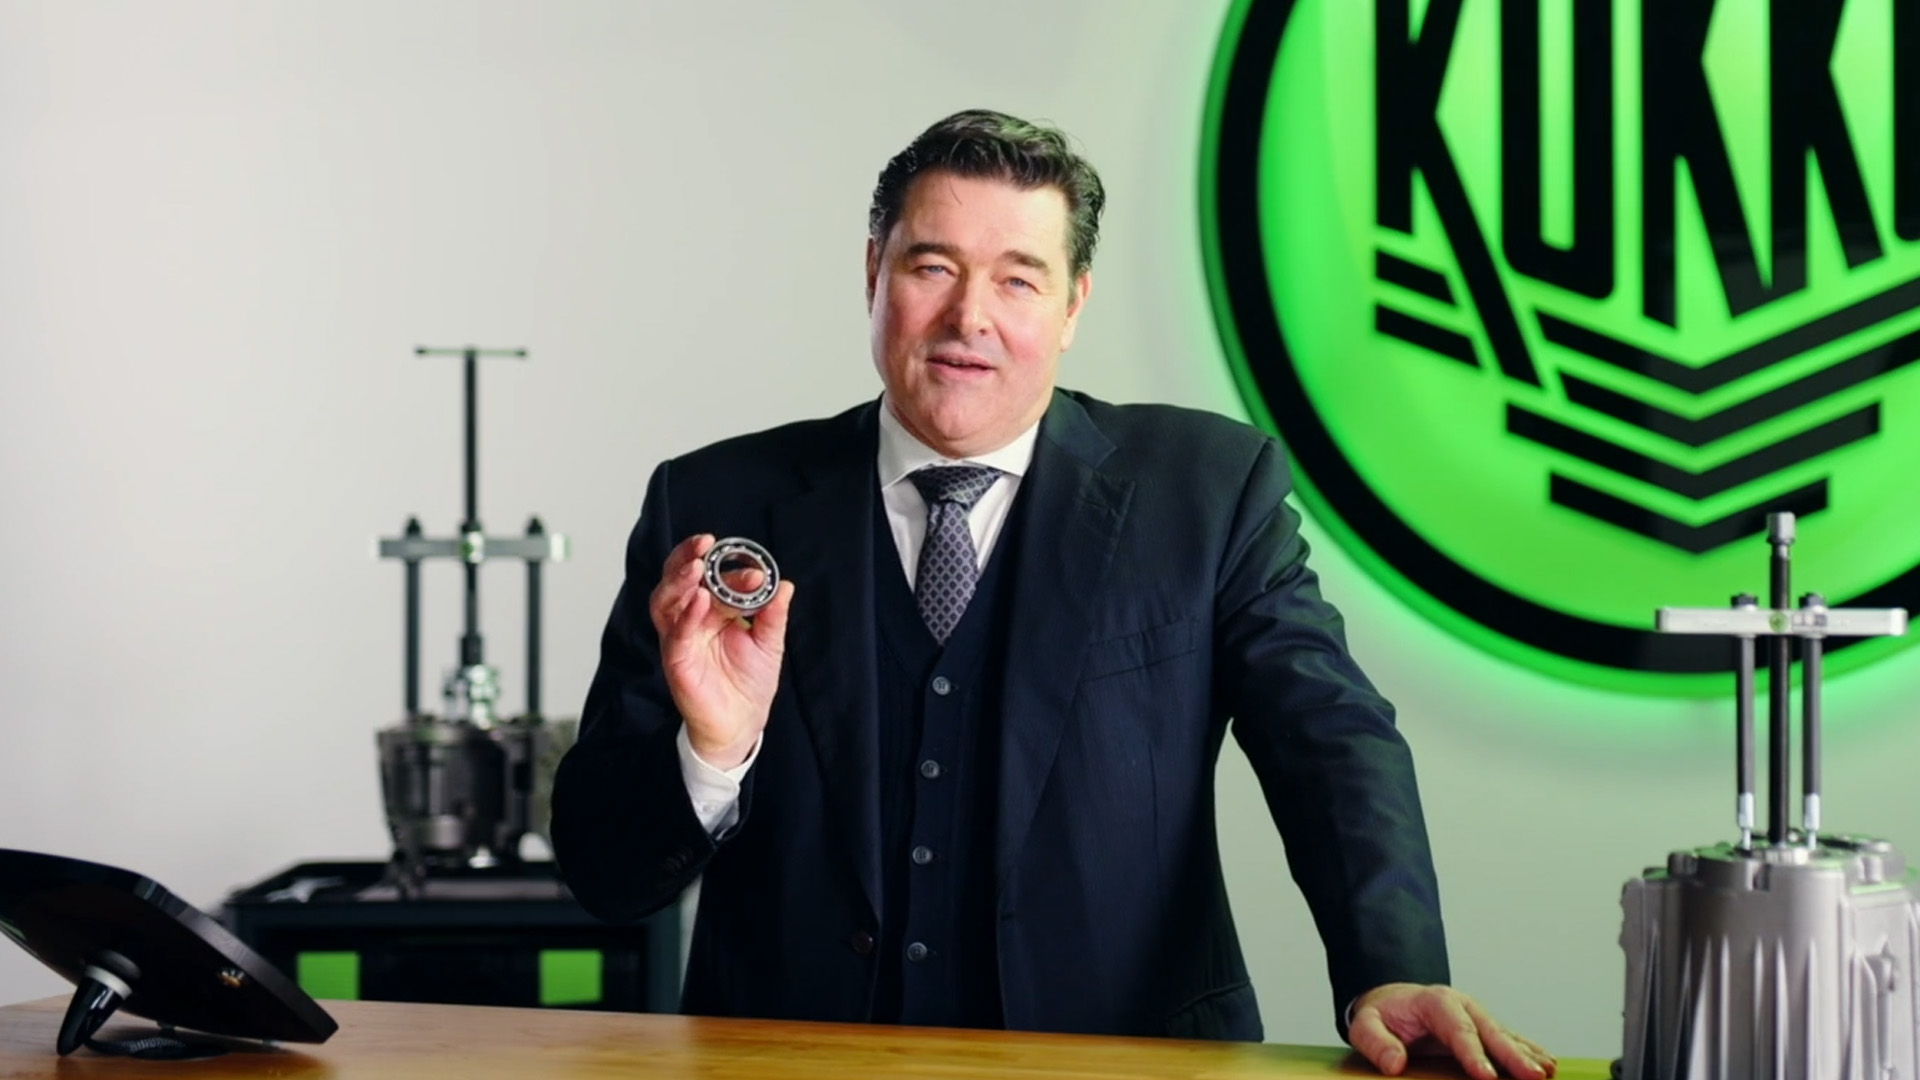 Ceo Michael Kleinbongartz holding a  ball bearing and explaining how to expand your bearing business.